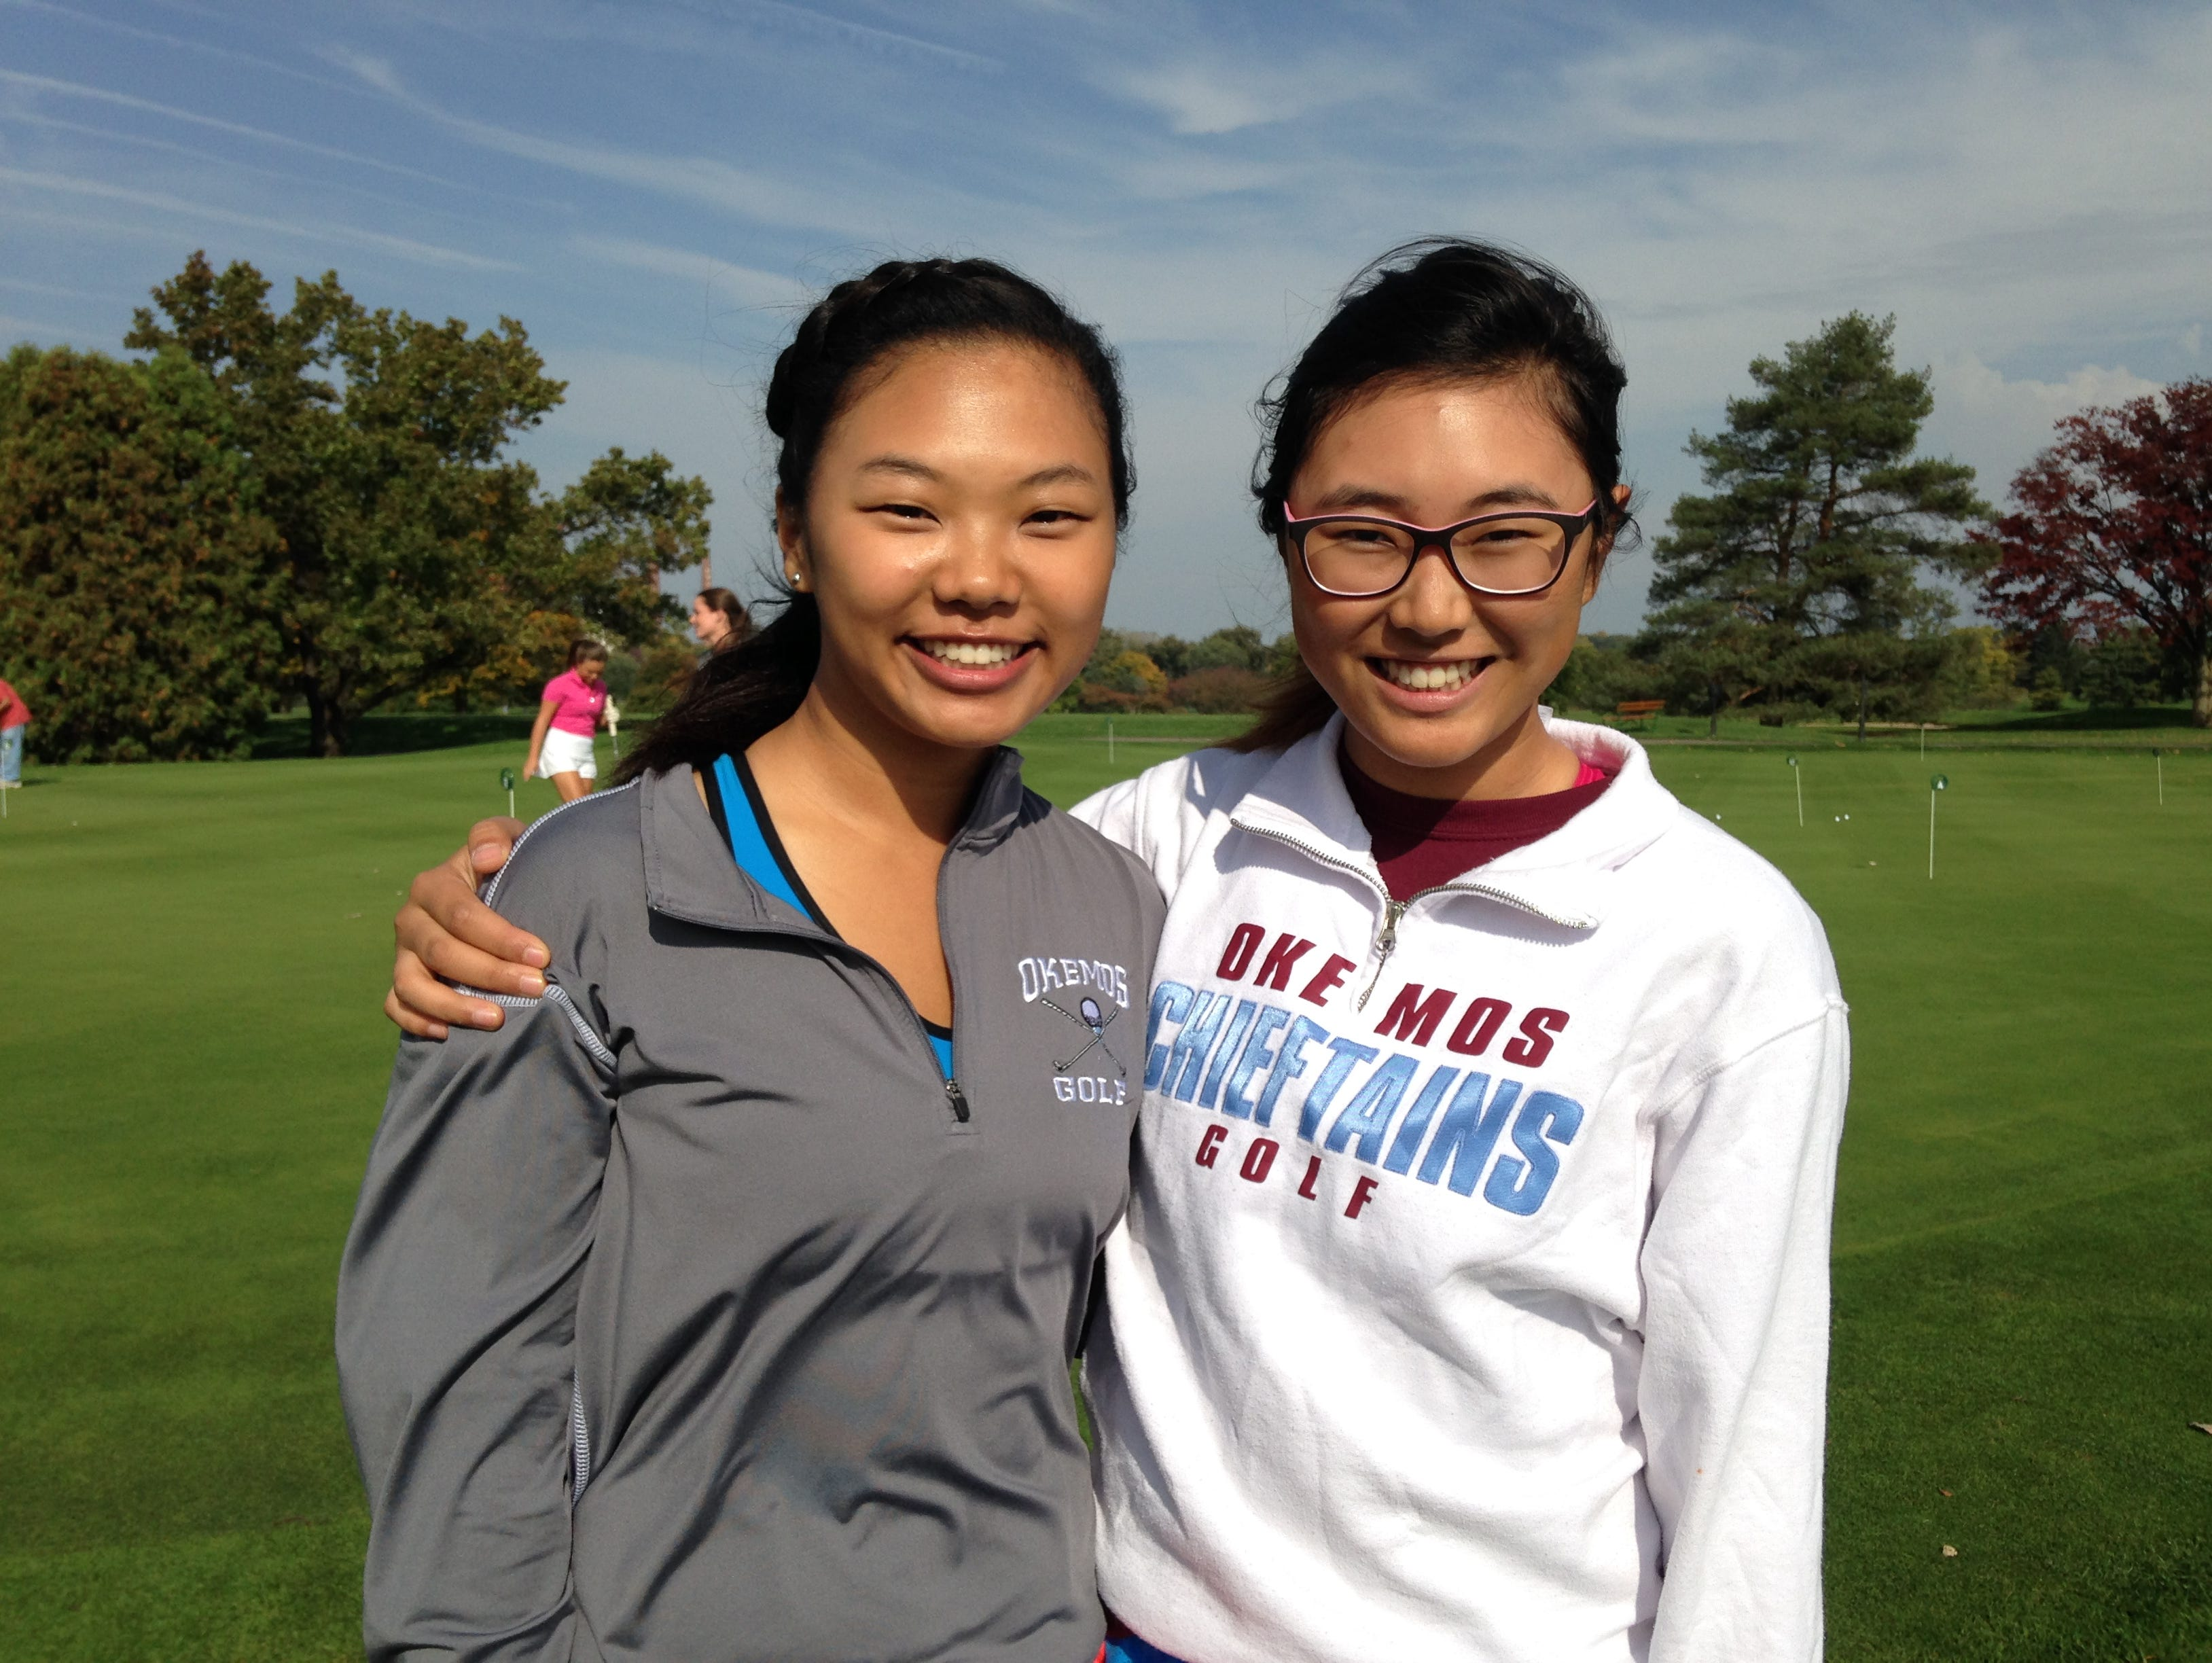 Sisters Jessica (right) and Lauren Kim have been key components for the Okemos girls golf team, which has won CAAC Blue and regional titles this season.